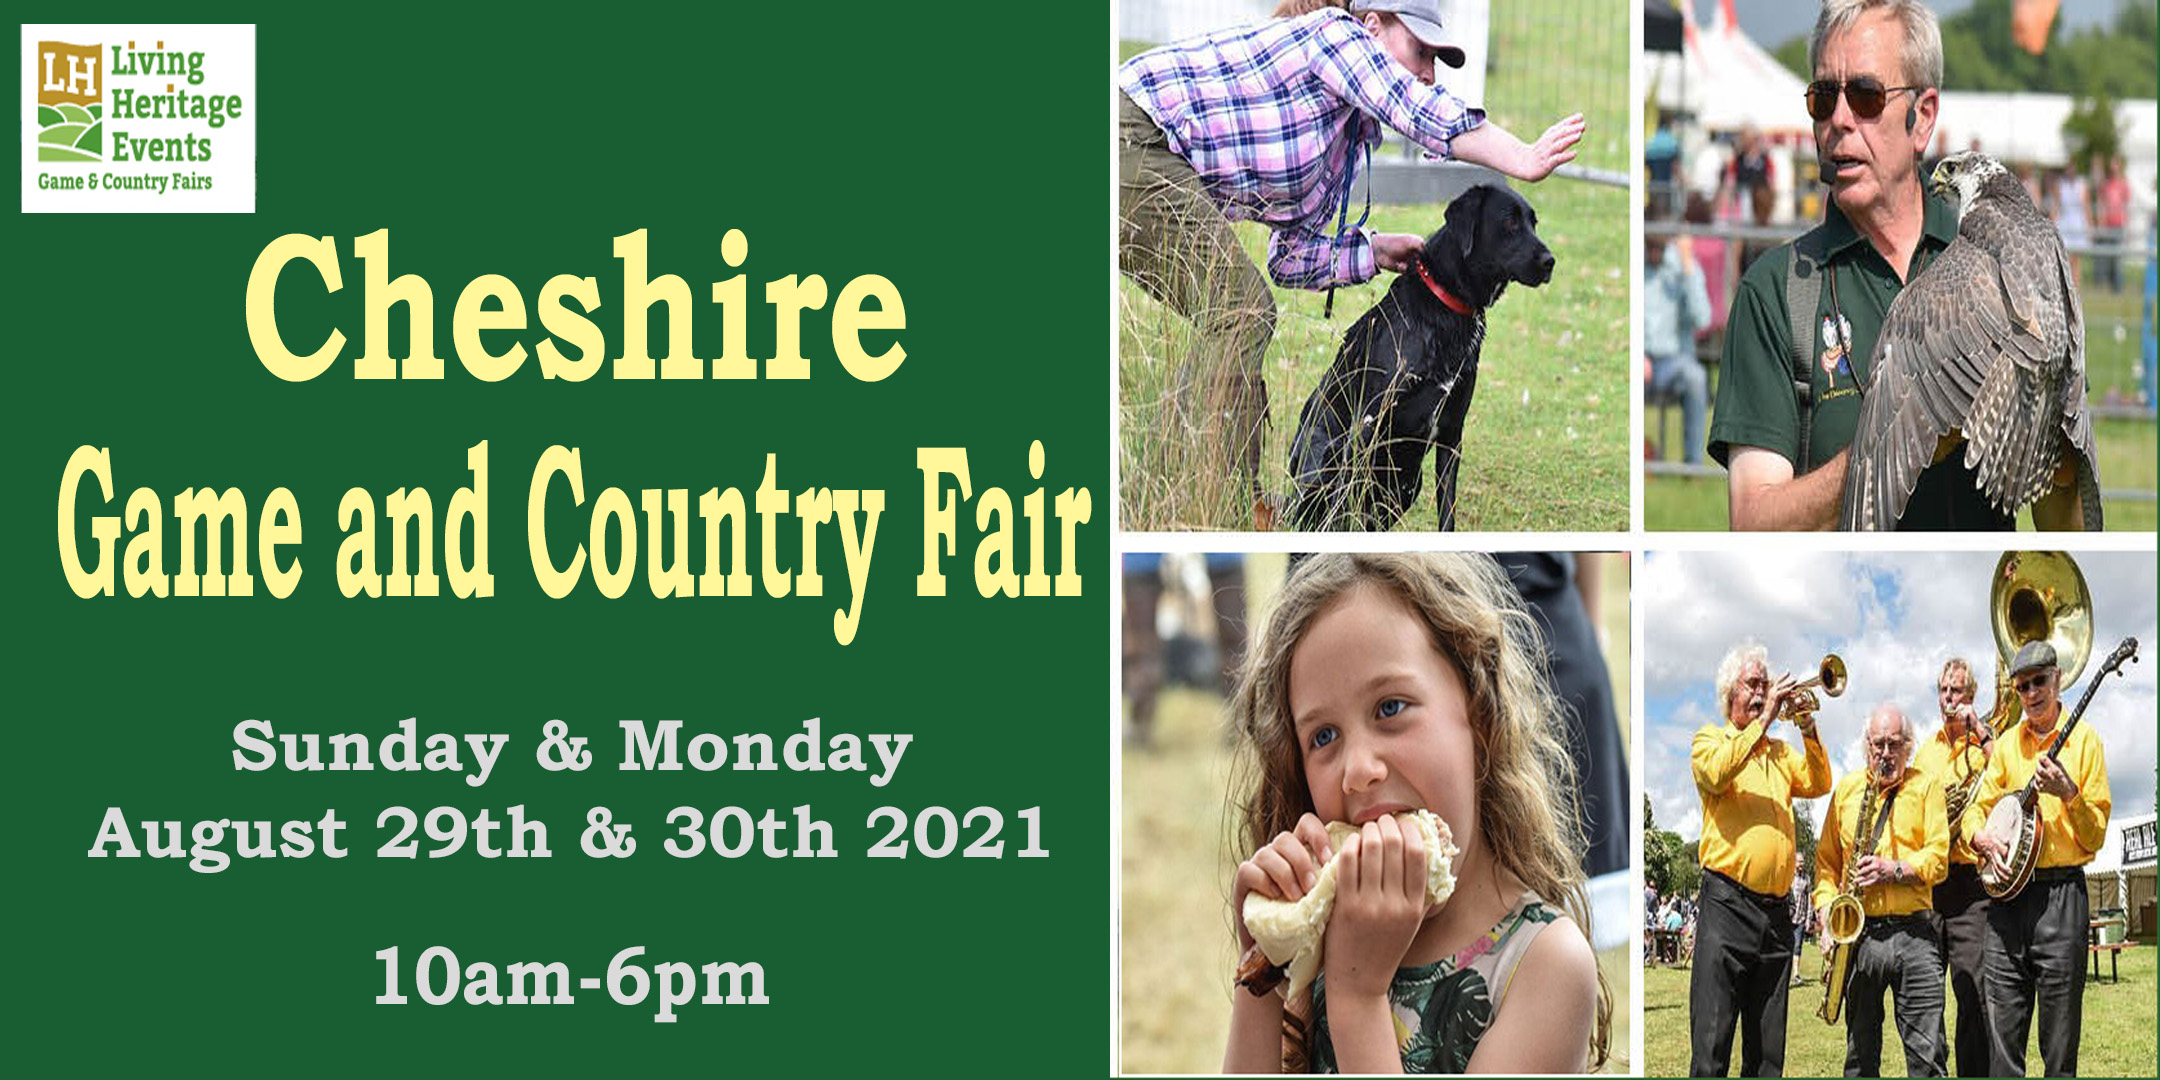 Cheshire Game and Country Fair